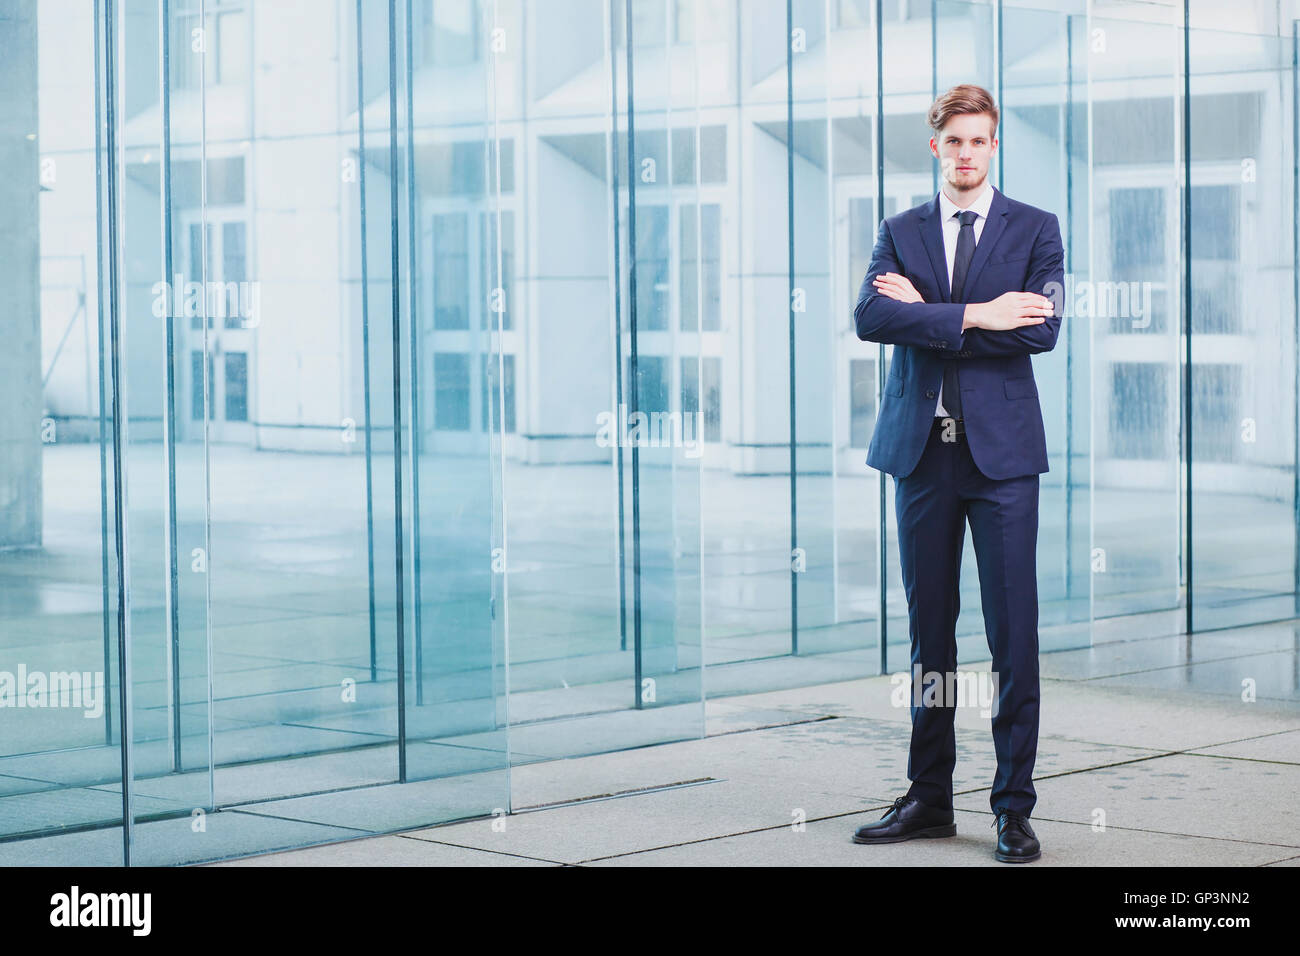 businessman standing on abstract business background, full body portrait - Stock Image